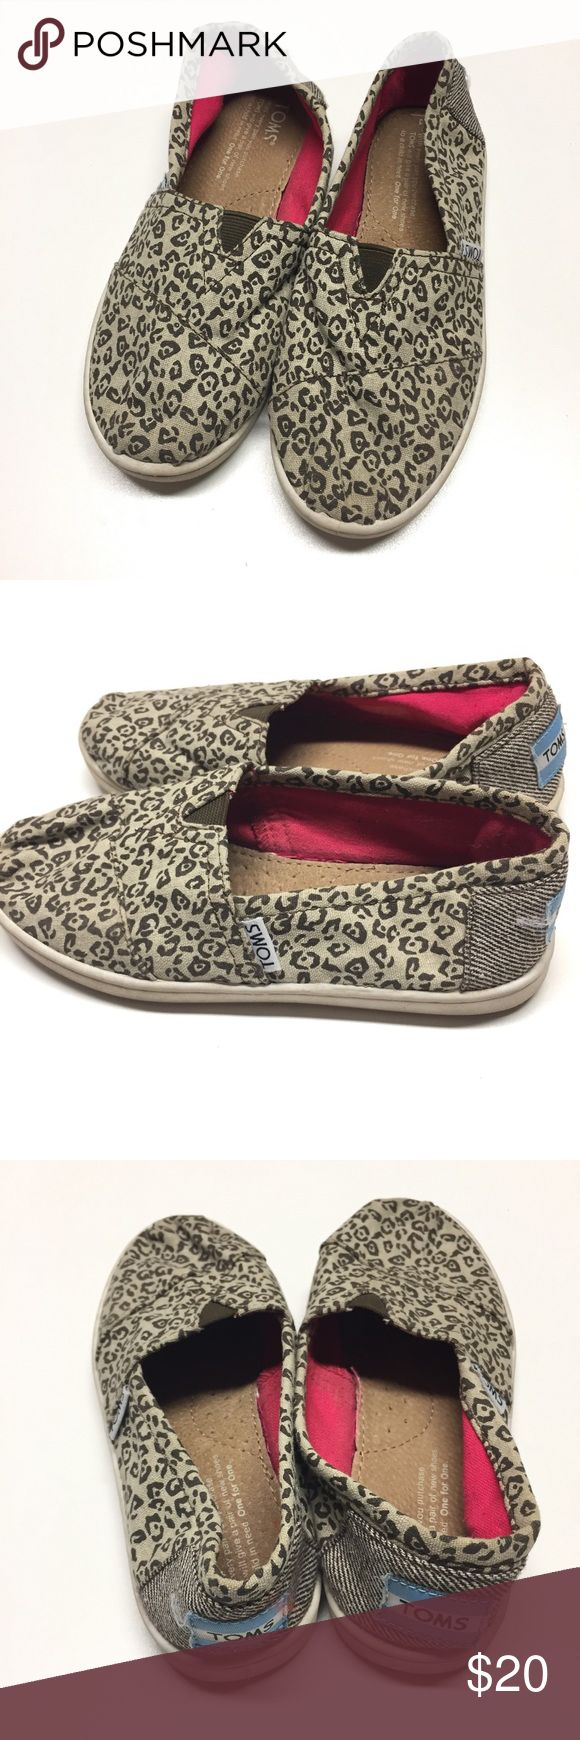 Leopard TOMS youth 1 Leopard print TOMS size youth 1. Hint of gold sparkle. GUC. TOMS Shoes